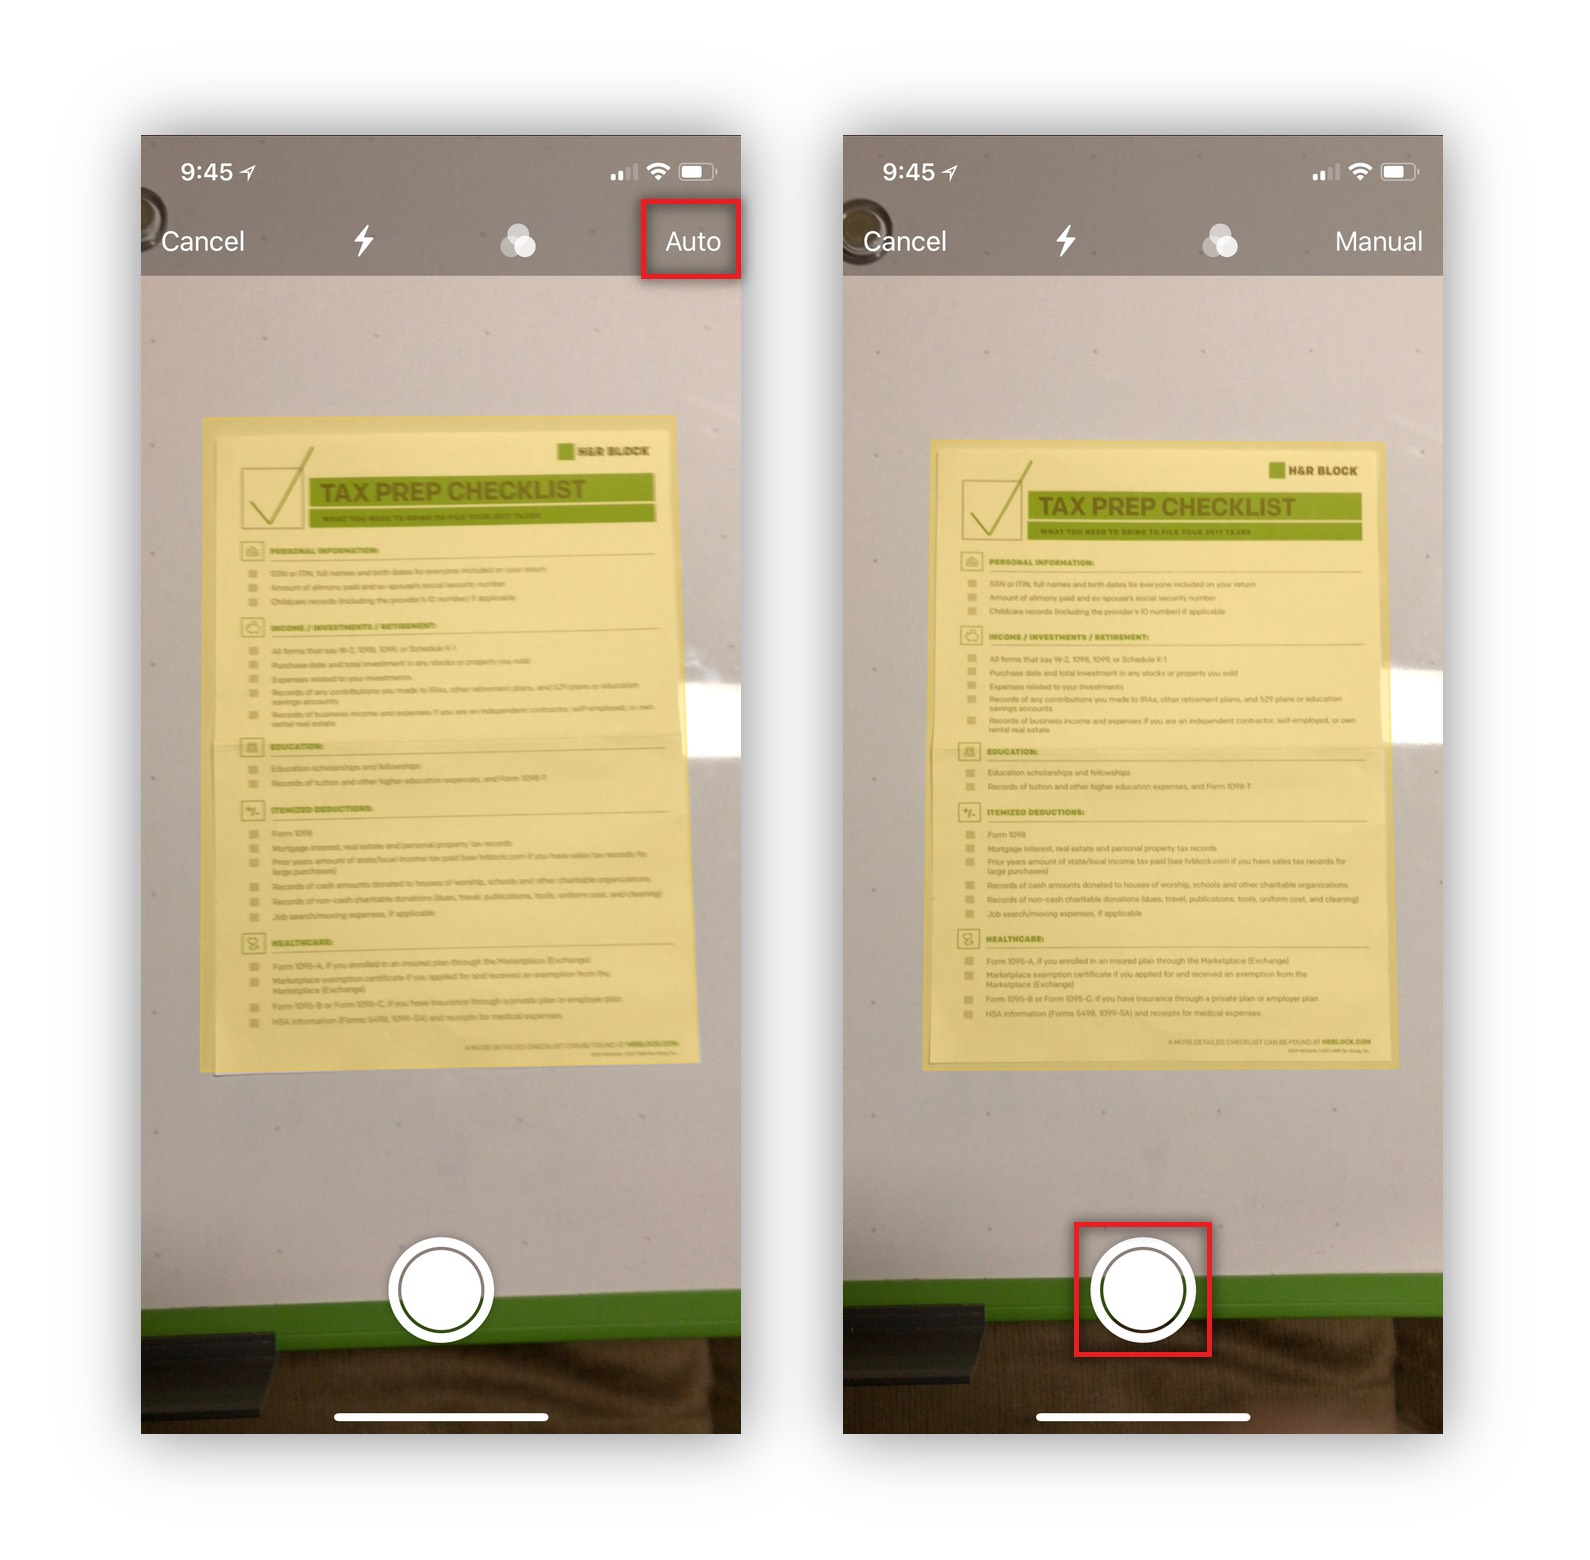 How To Scan A Document Using Notes on iOS